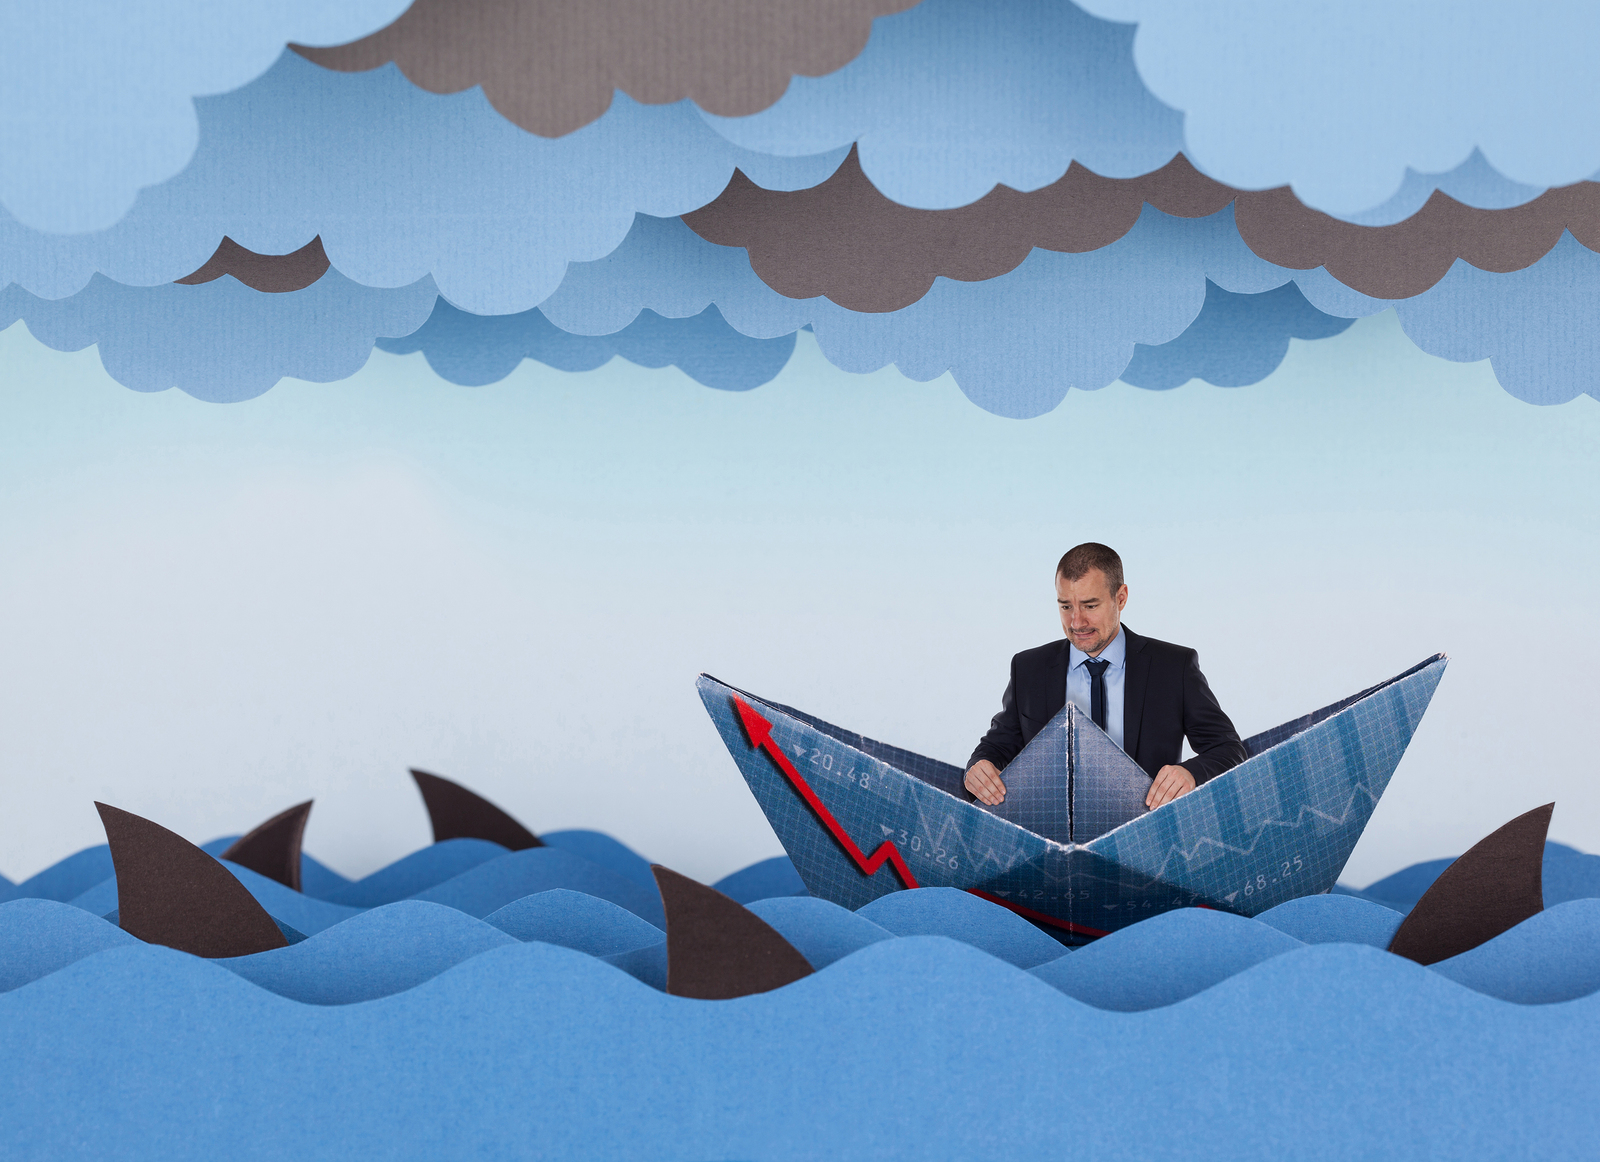 Businessman surrounded by sharks in stormy sea. Competitive business concept. Paper waves clouds boat and